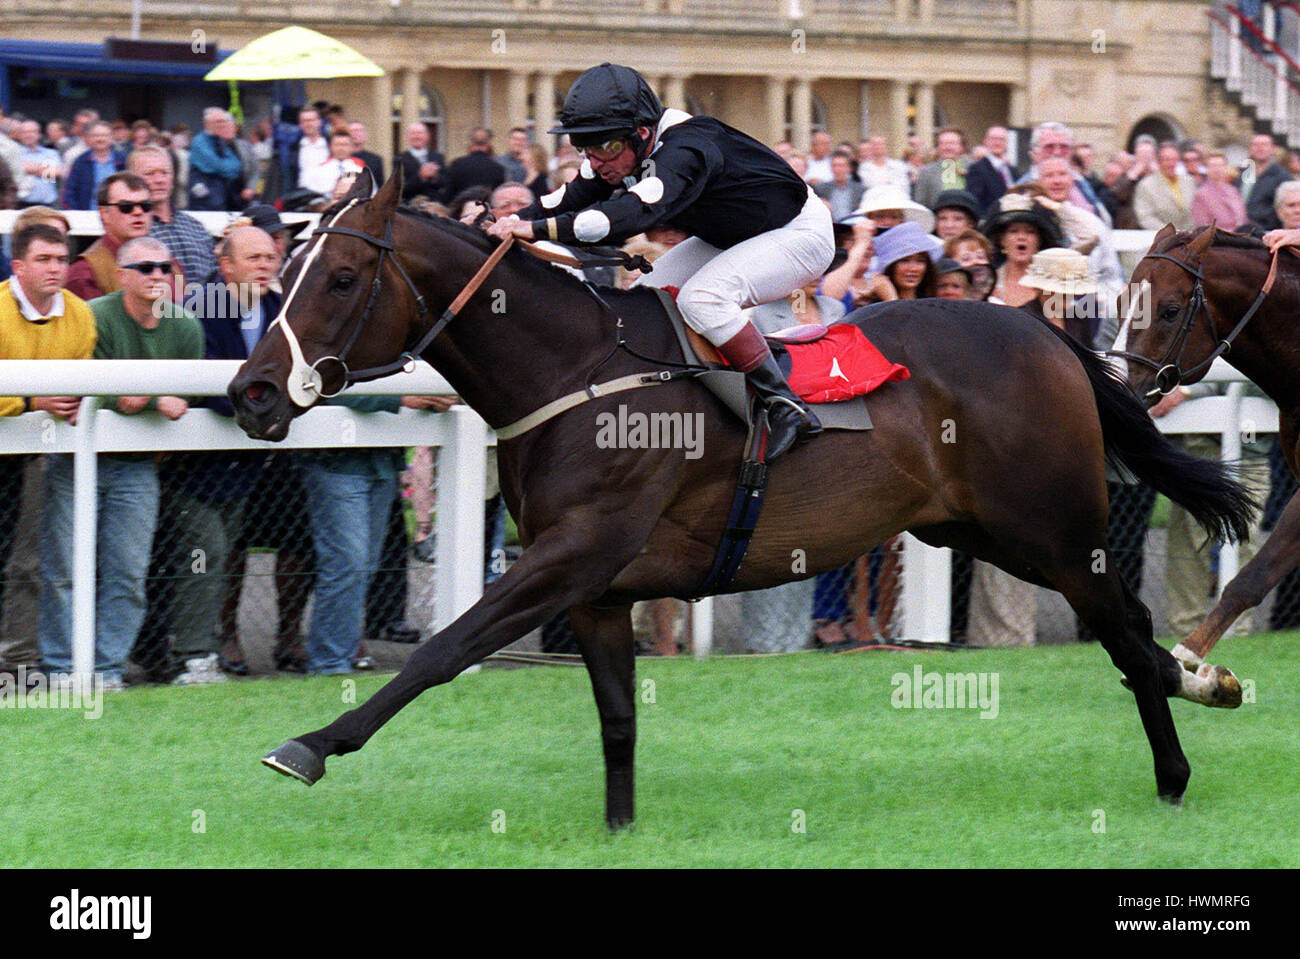 LORD KINTYRE RIDDEN BY M.ROBERTS 09 September 2000 - Stock Image